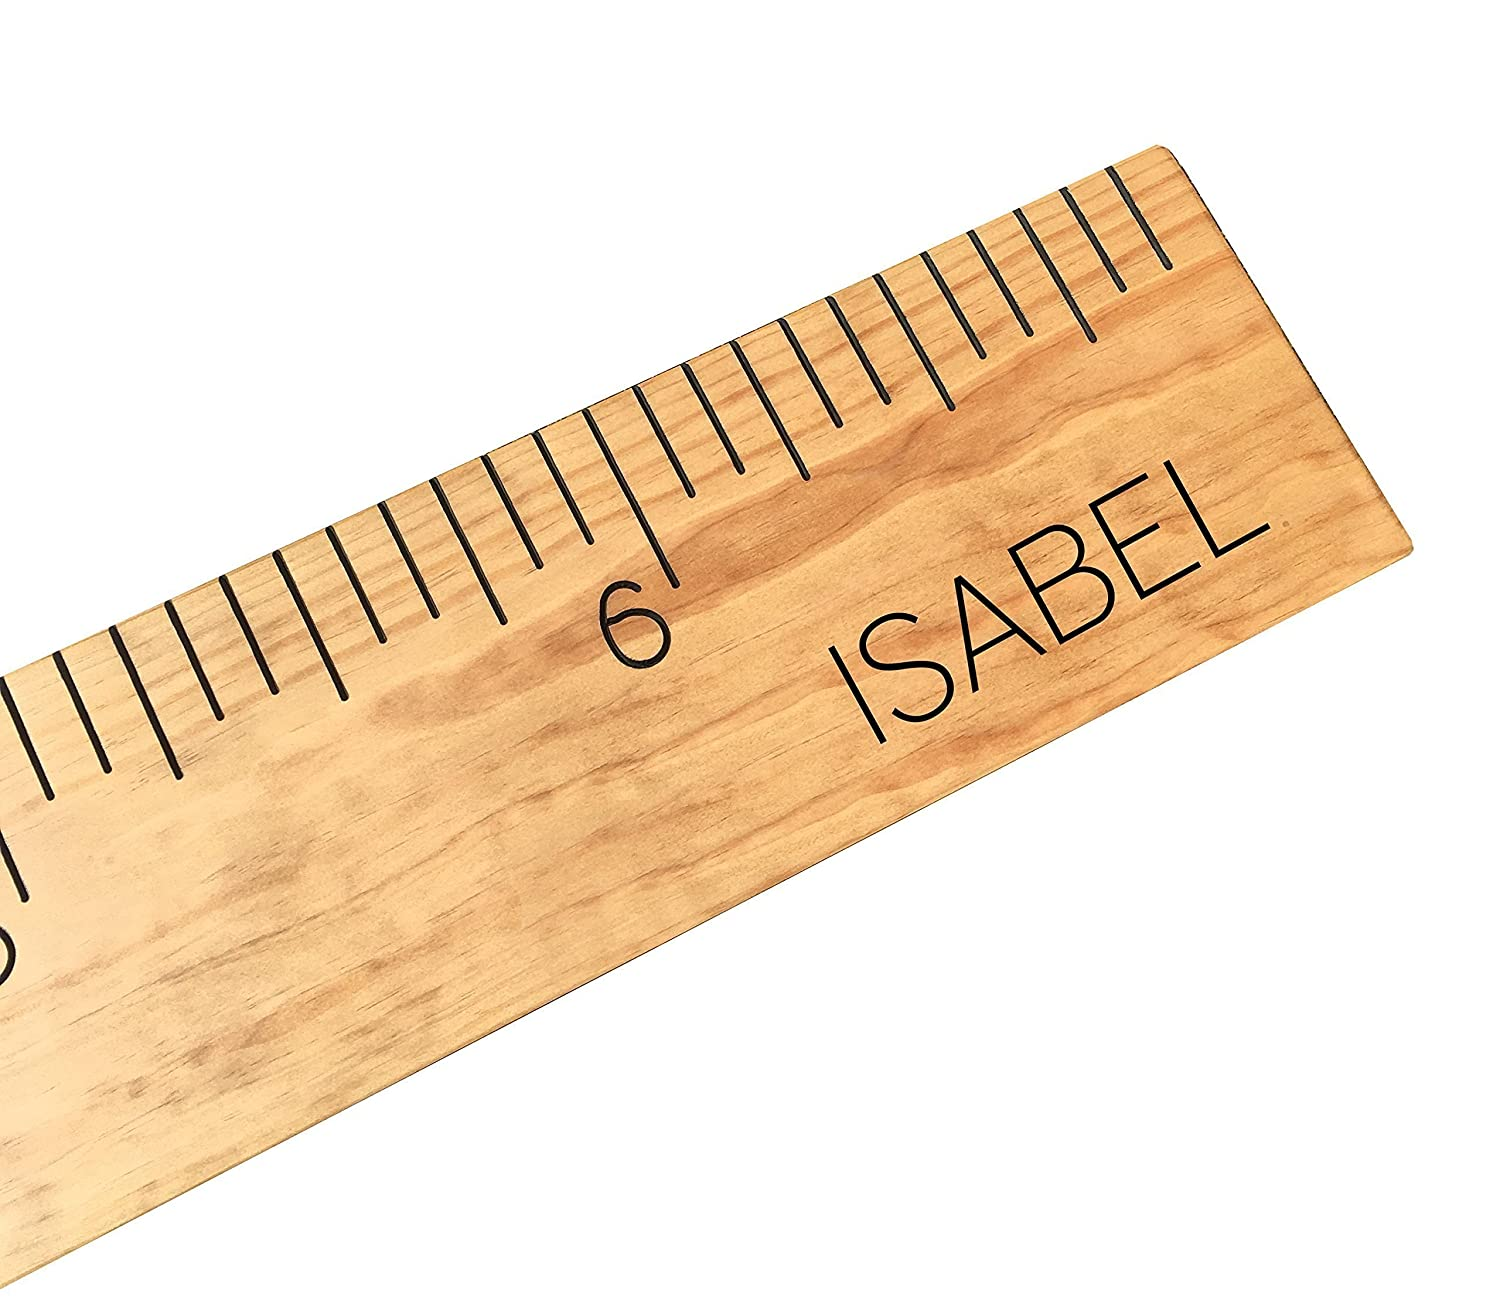 Amazon custom growth chart engraved personalized wooden amazon custom growth chart engraved personalized wooden ruler measuring height stick routed oversized handmade geenschuldenfo Choice Image